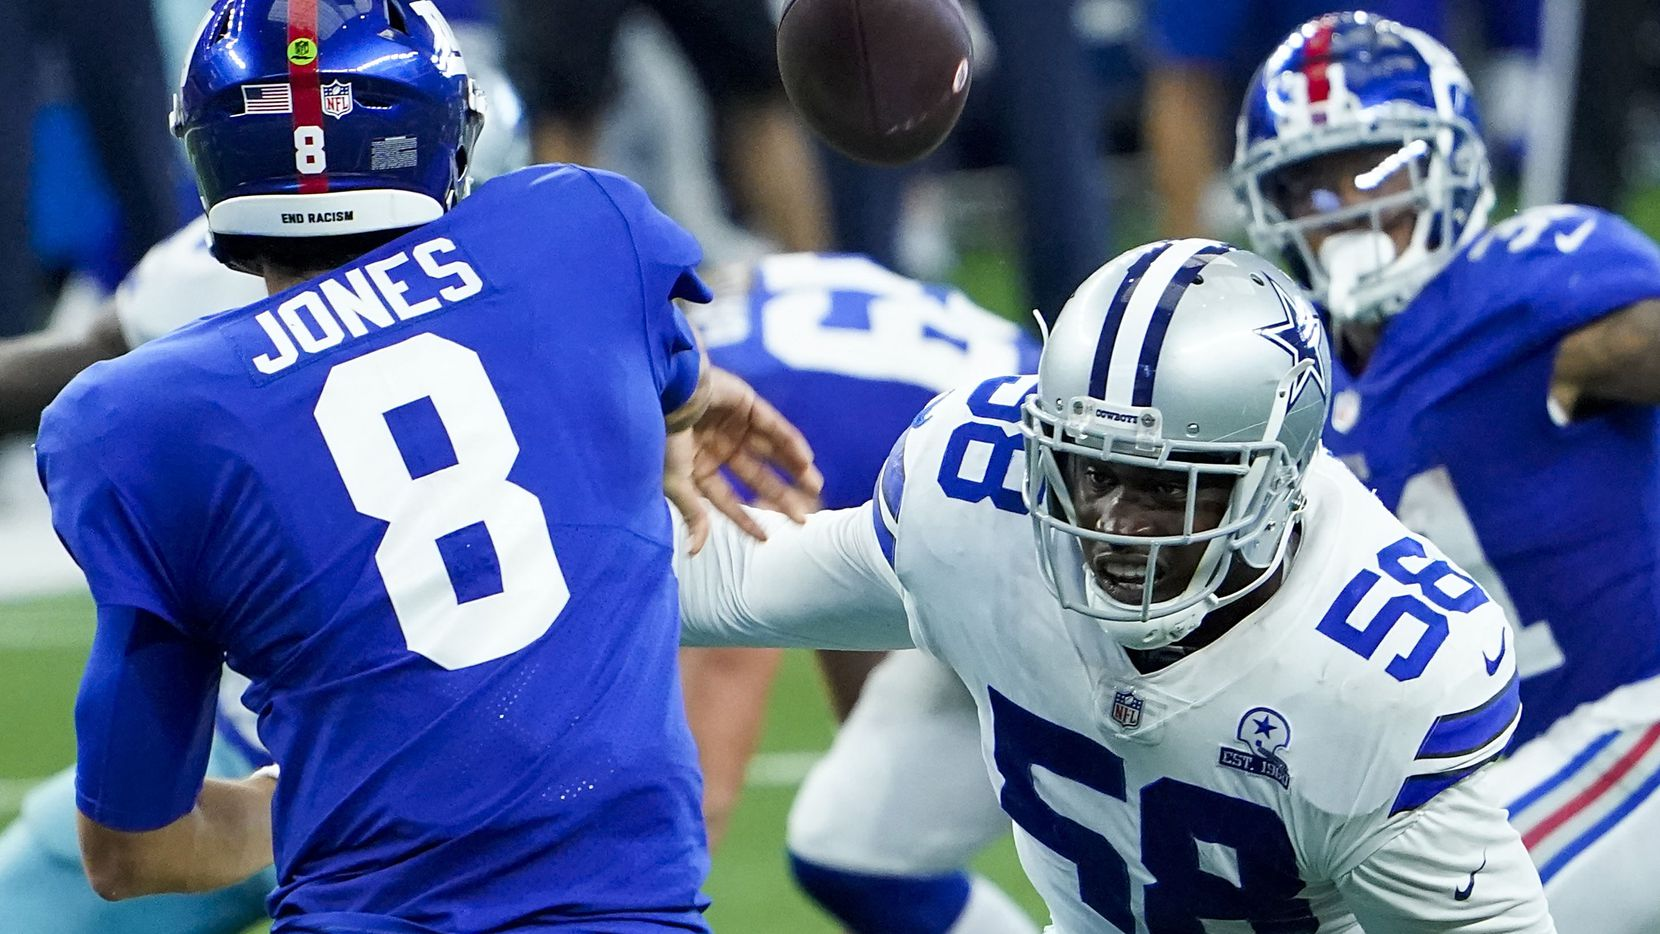 New York Giants quarterback Daniel Jones (8) gets off a pass under pressure from Dallas Cowboys defensive end Aldon Smith (58) during the second quarter of an NFL football game at AT&T Stadium on Sunday, Oct. 11, 2020, in Arlington. (Smiley N. Pool/The Dallas Morning News)